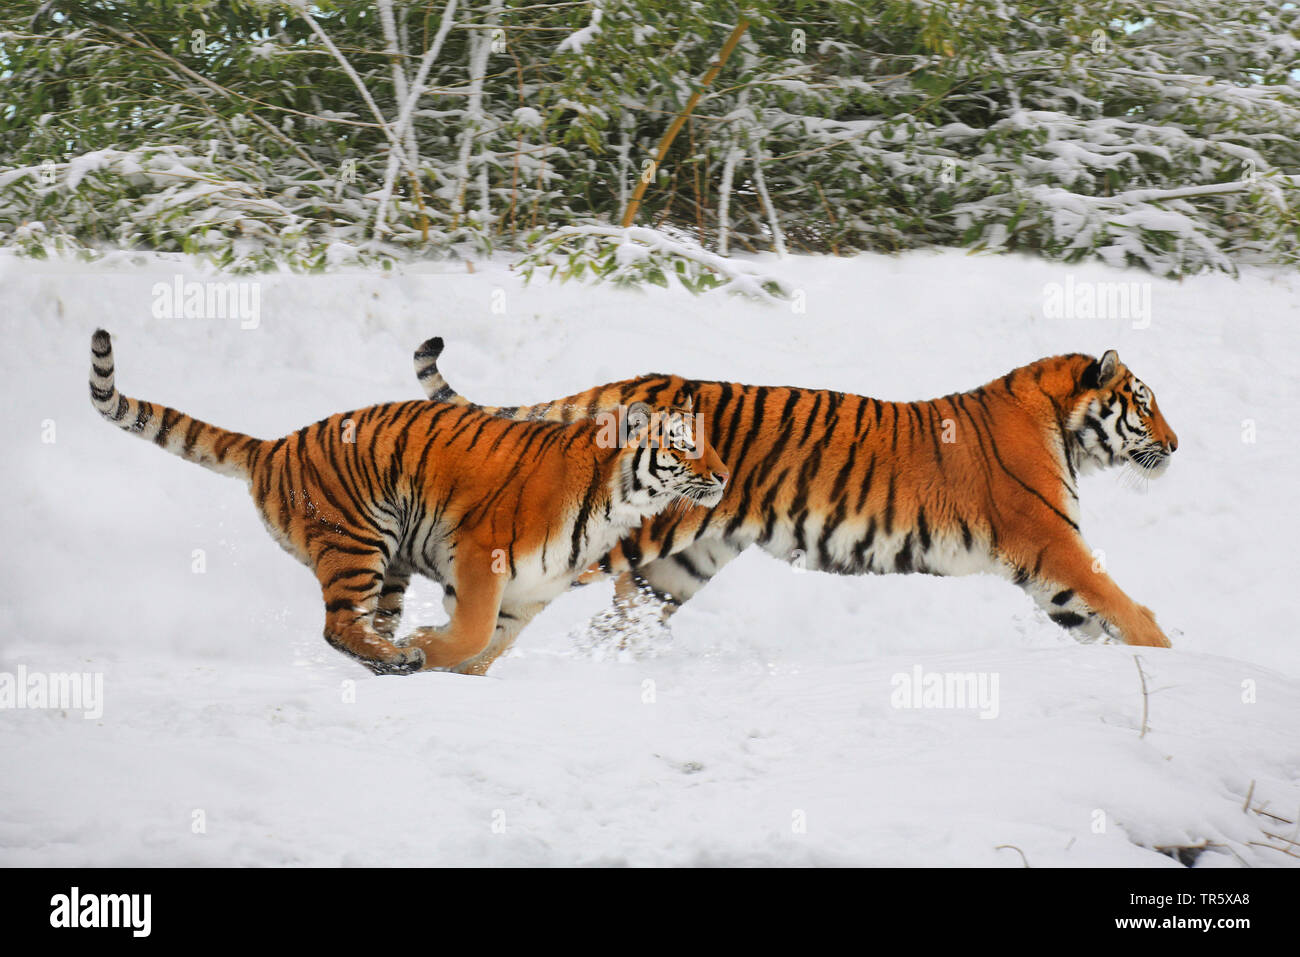 Tiger (Panthera tigris), zwei Tiger rennen zusammen ueber ein Schneefeld, Seitenansicht | tiger (Panthera tigris), two tigers running together over a - Stock Image